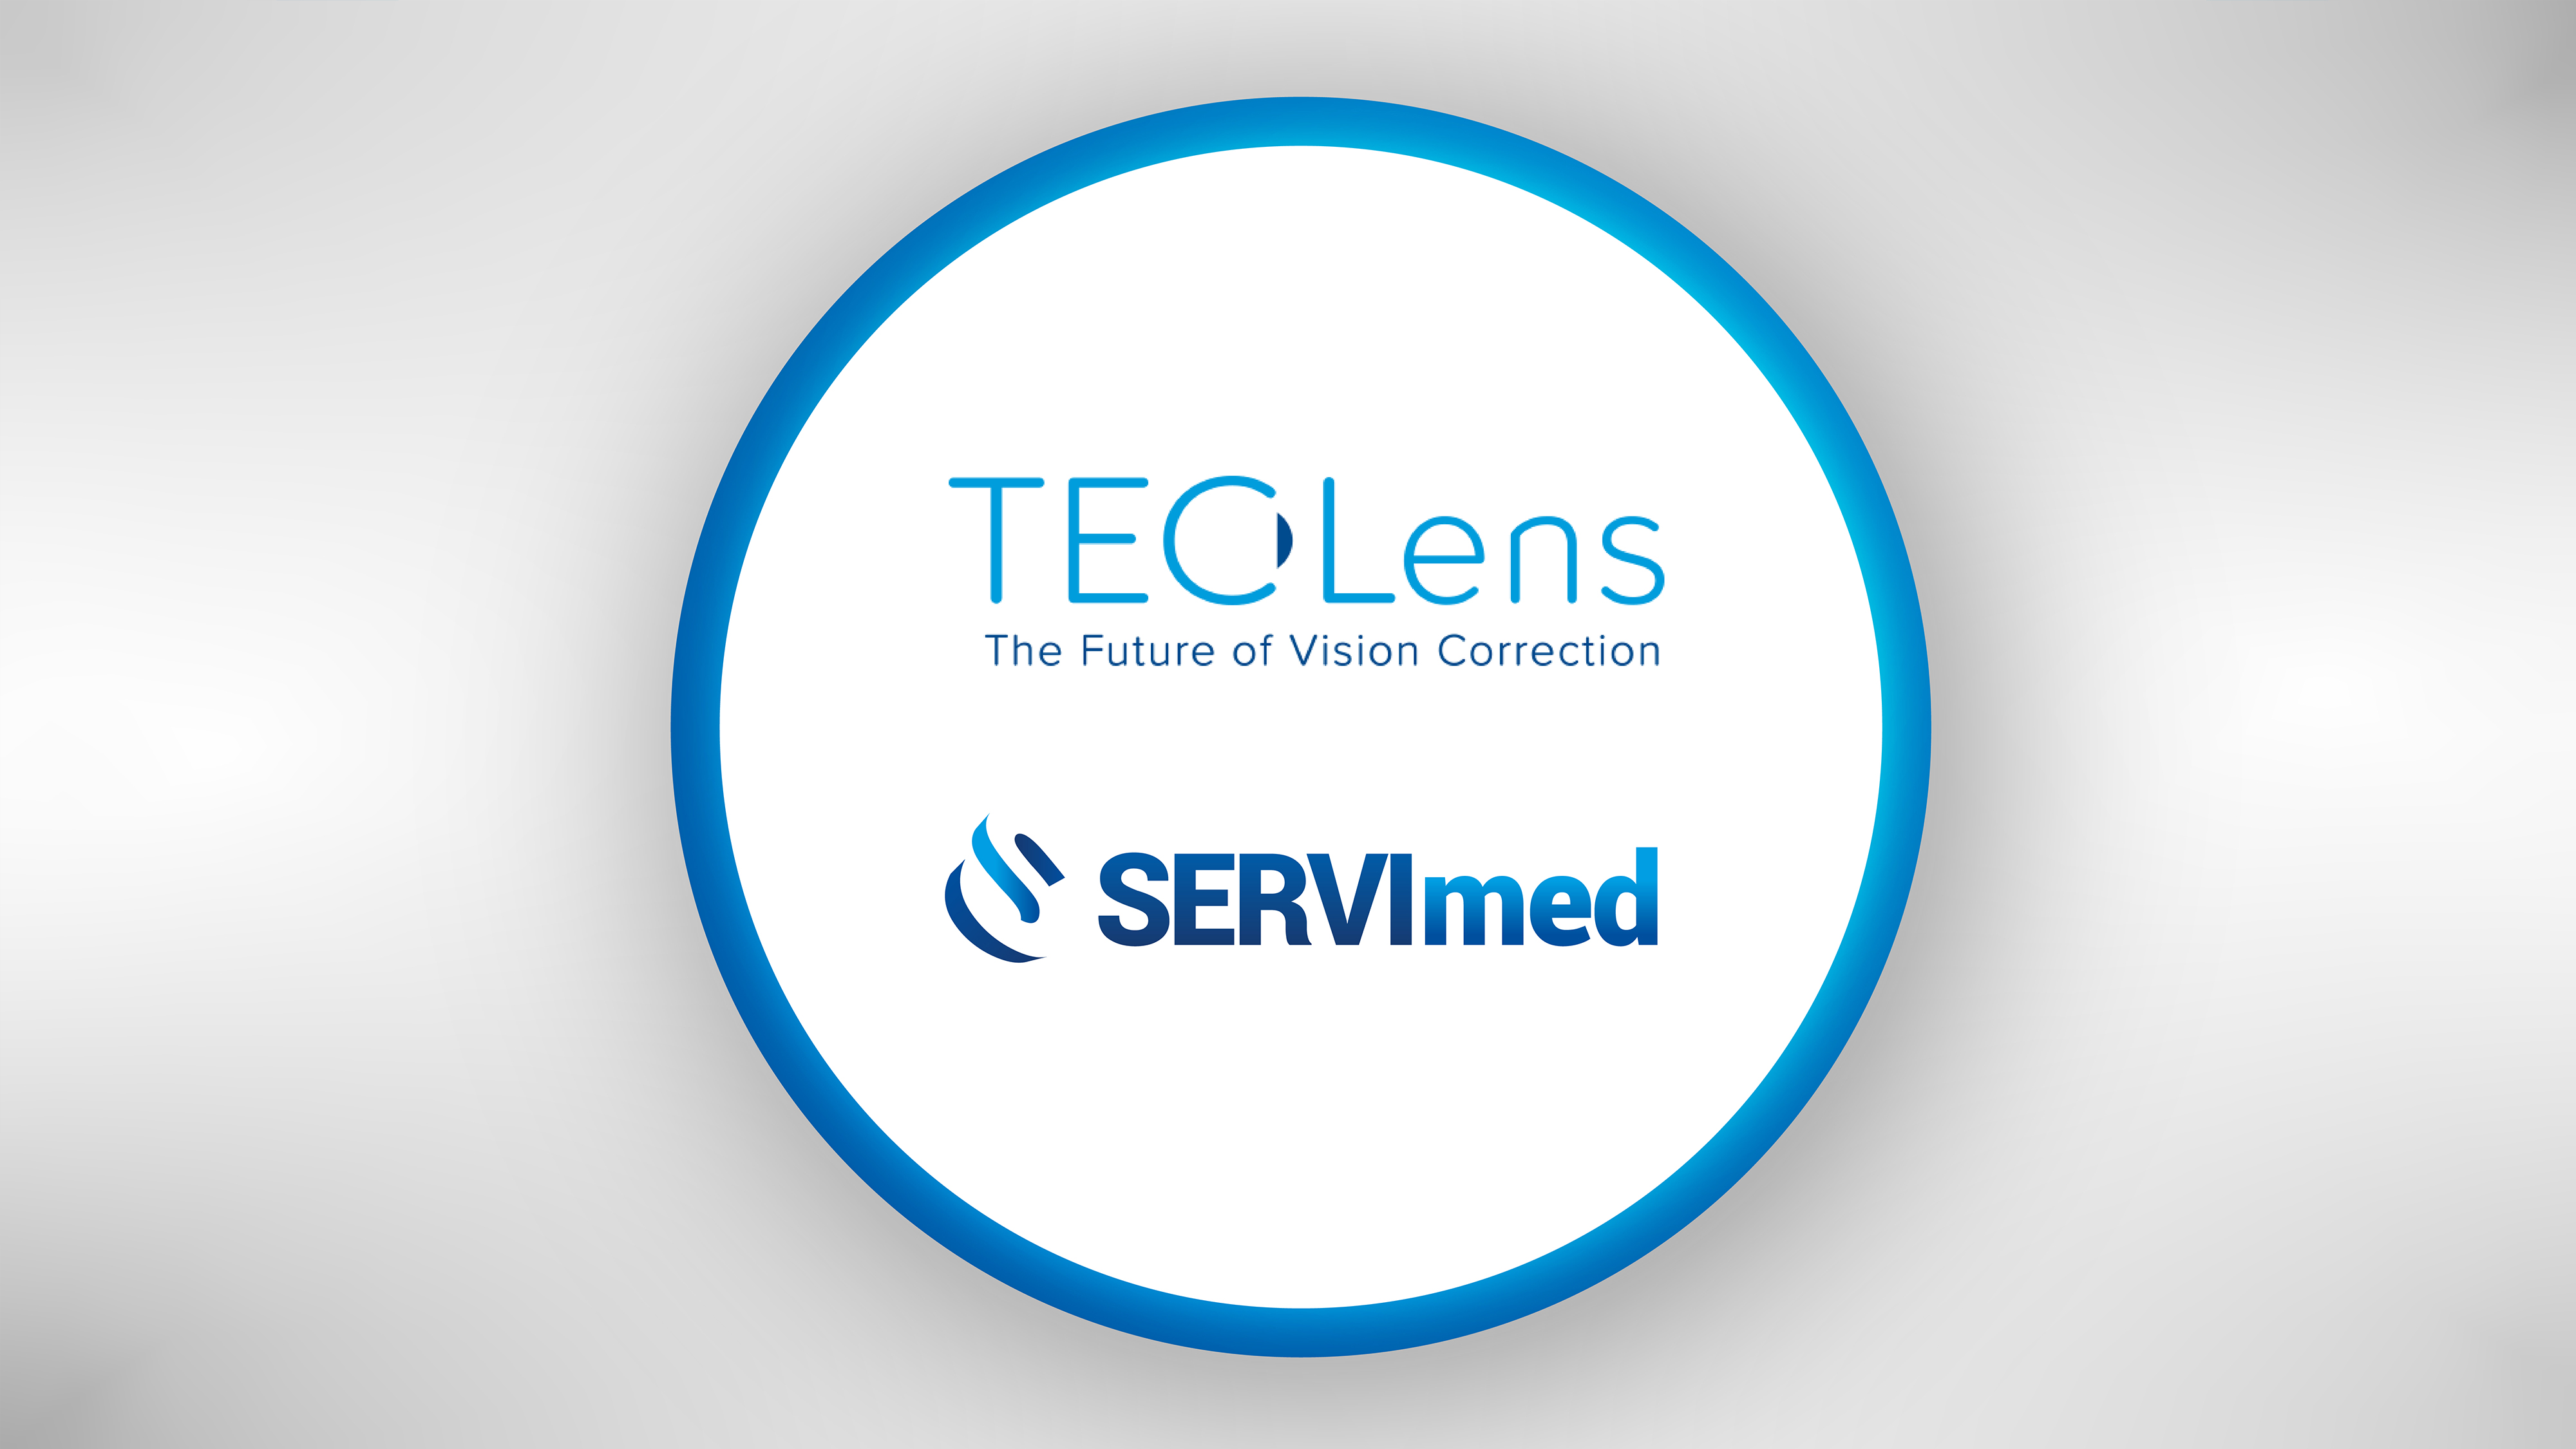 TECLens and SERVImed Industrial Spa Announce a Partnership to Pursue U.S. FDA Approval for Trans-epithelial Corneal Cross-Linking